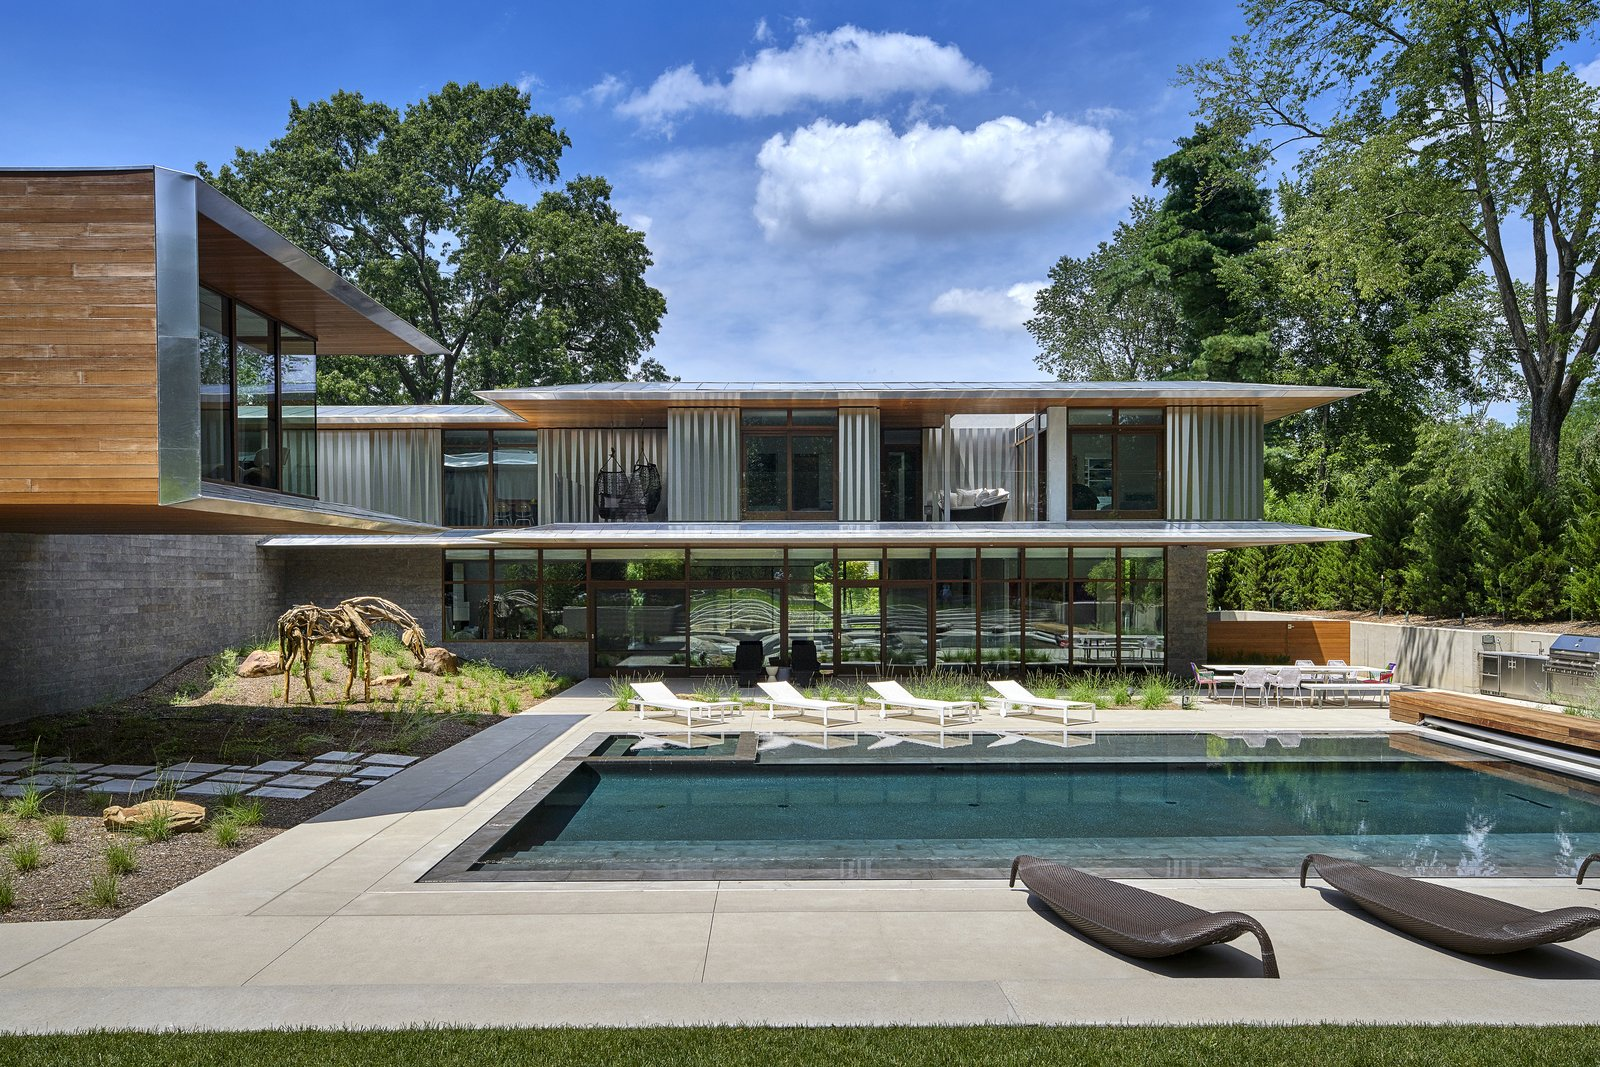 Outdoor, Swimming Pools, Tubs, Shower, Large Pools, Tubs, Shower, Concrete Patio, Porch, Deck, Grass, Back Yard, and Hardscapes The custom aluminum screens bend and fold like a curtain as they wrap the second floor exterior.  Artery House